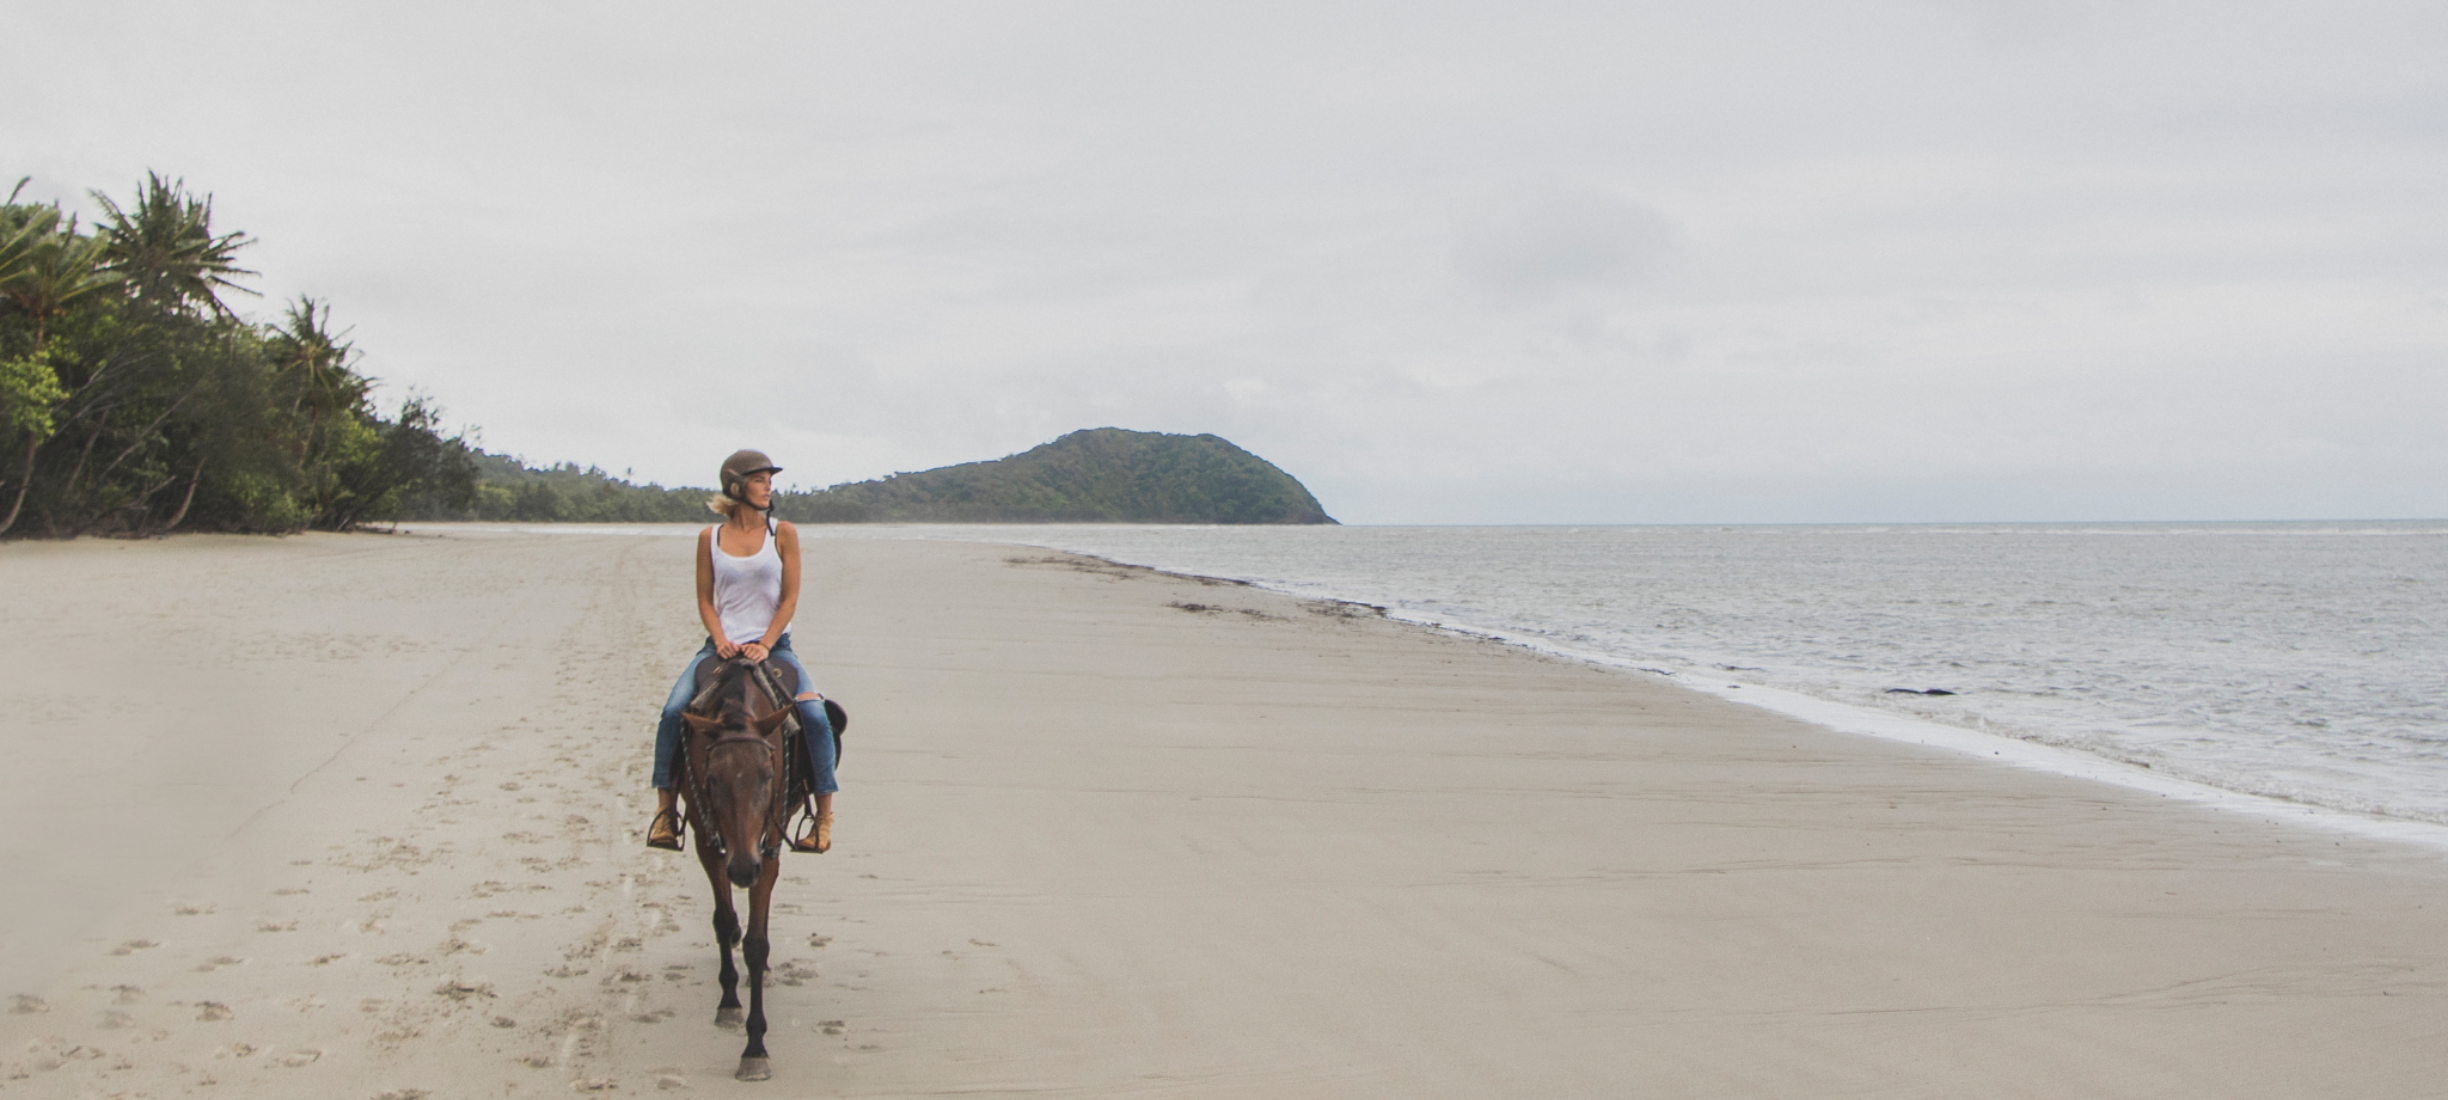 Horse riding Myall Beach Cape Tribulation